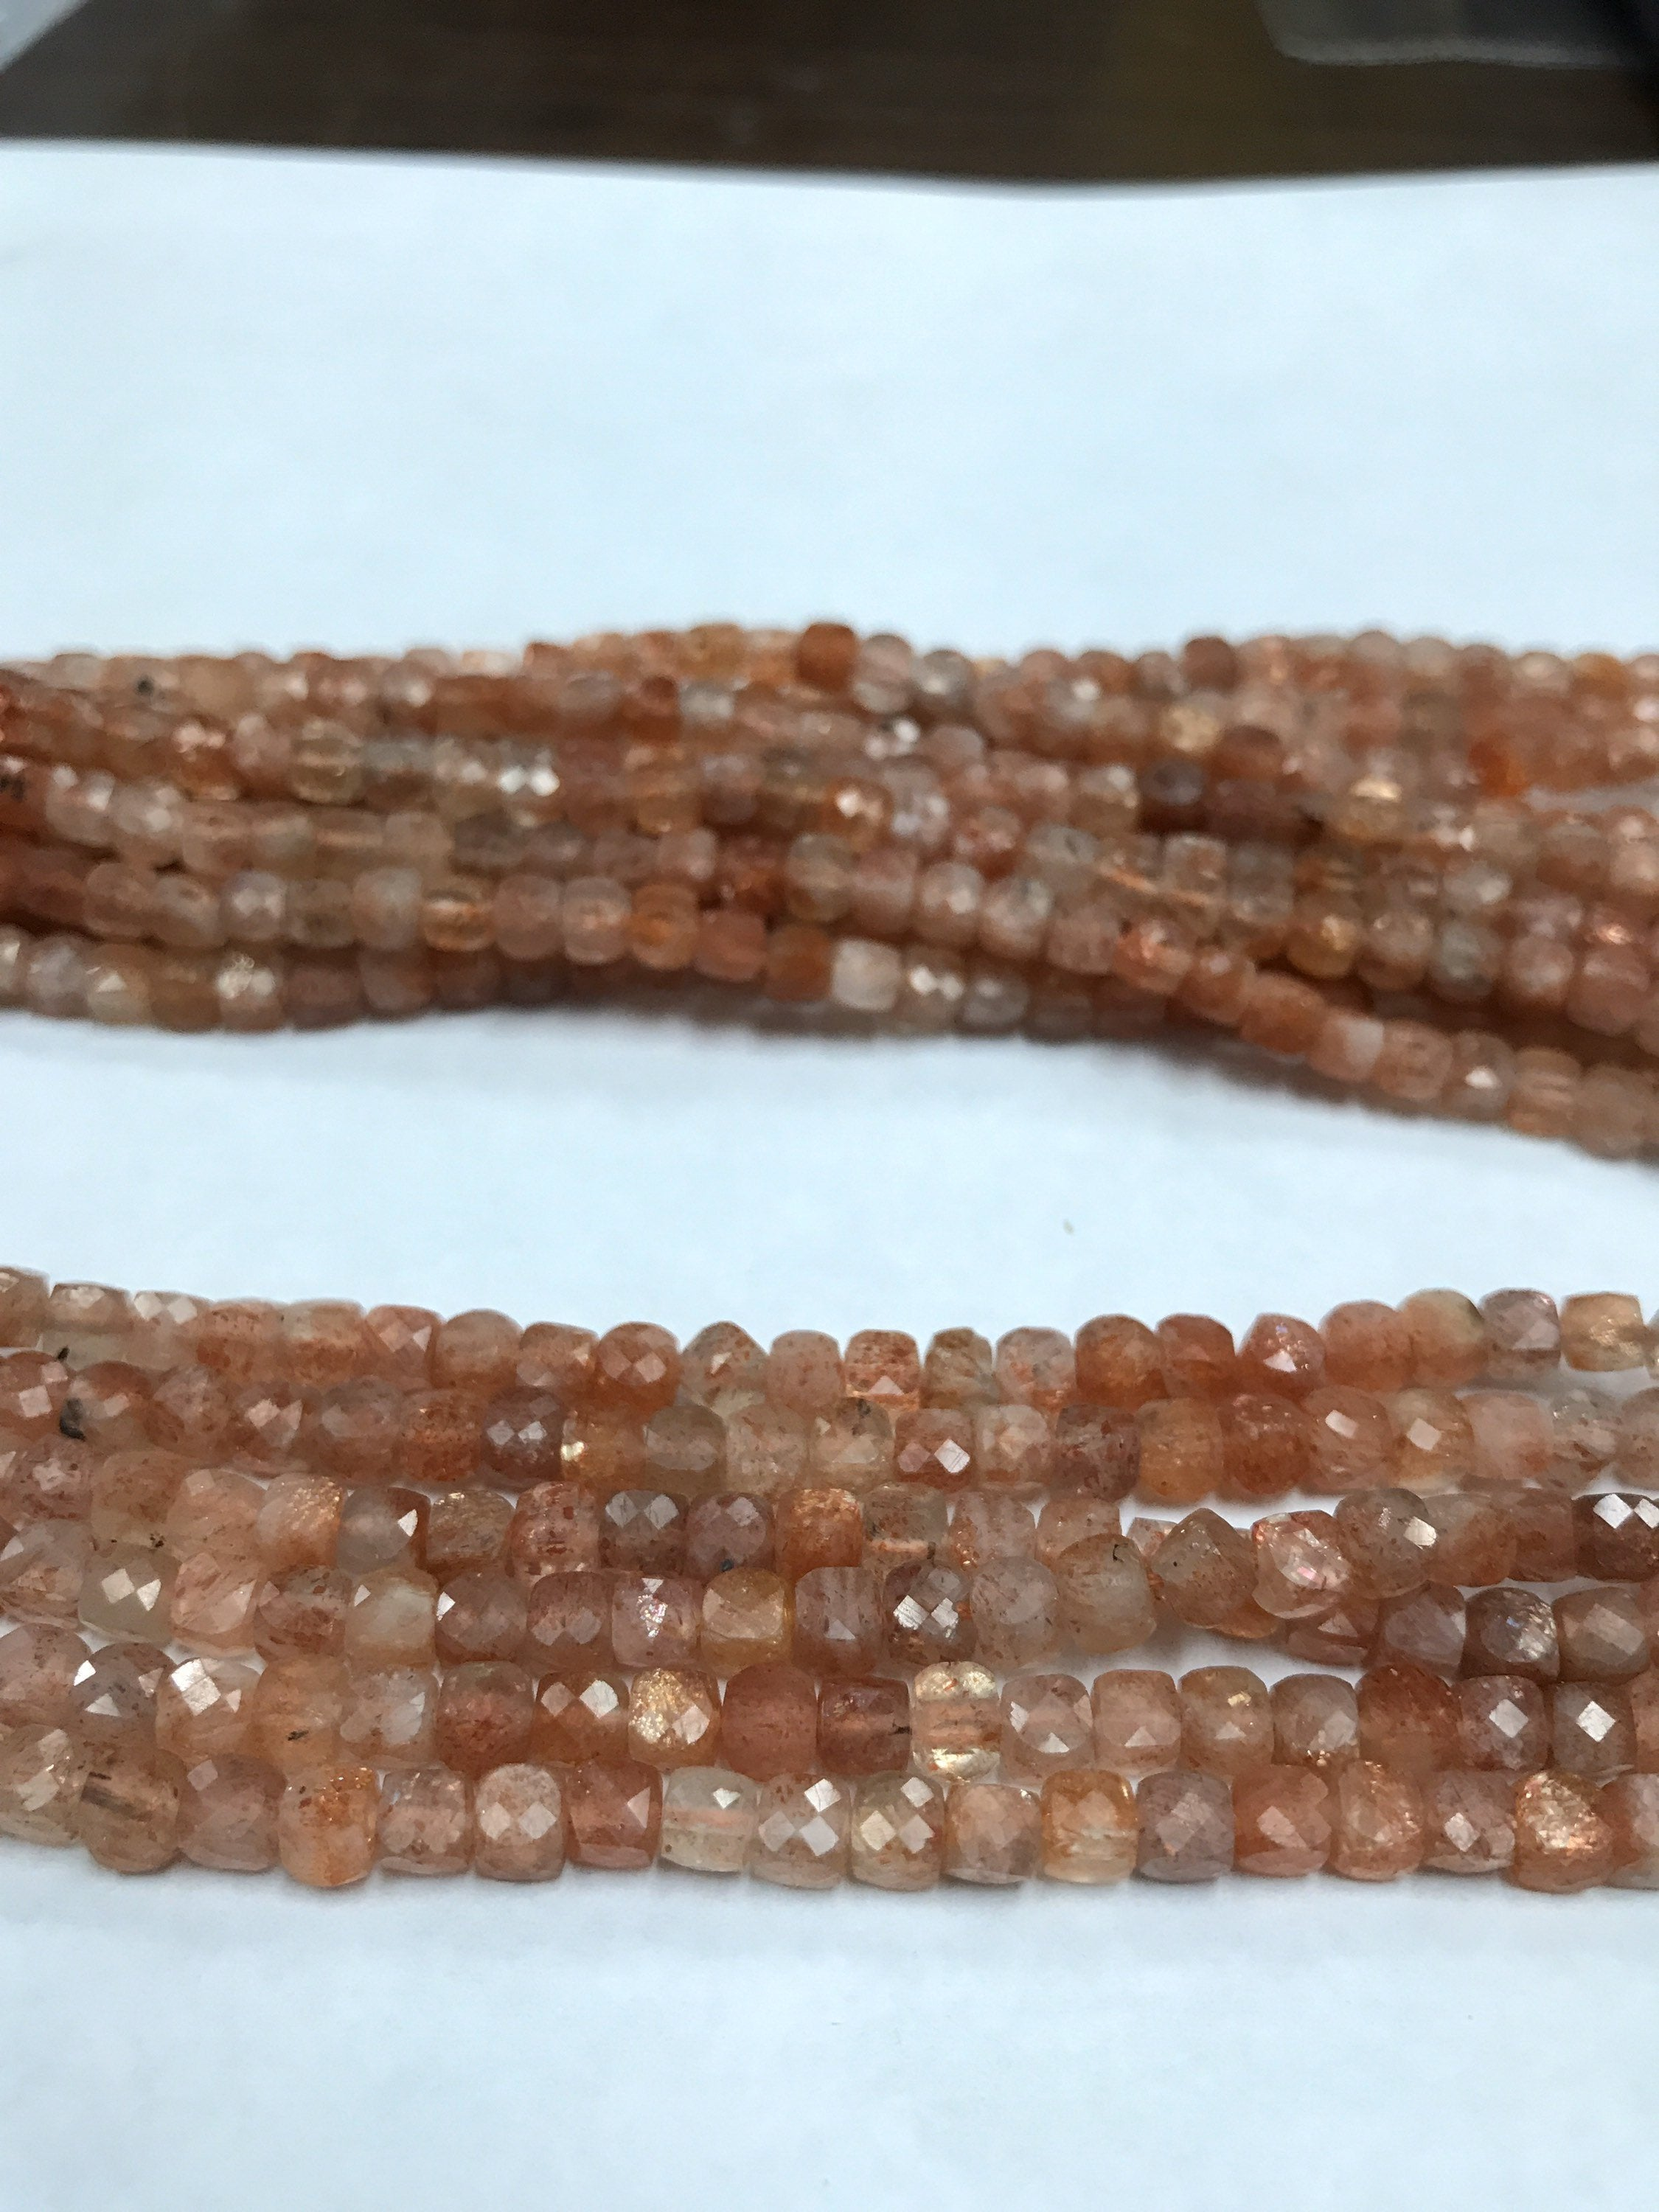 Details about  /310.00 Carats Natural Untreated Drilled Amazonite Pear Shape Faceted Beads Lot